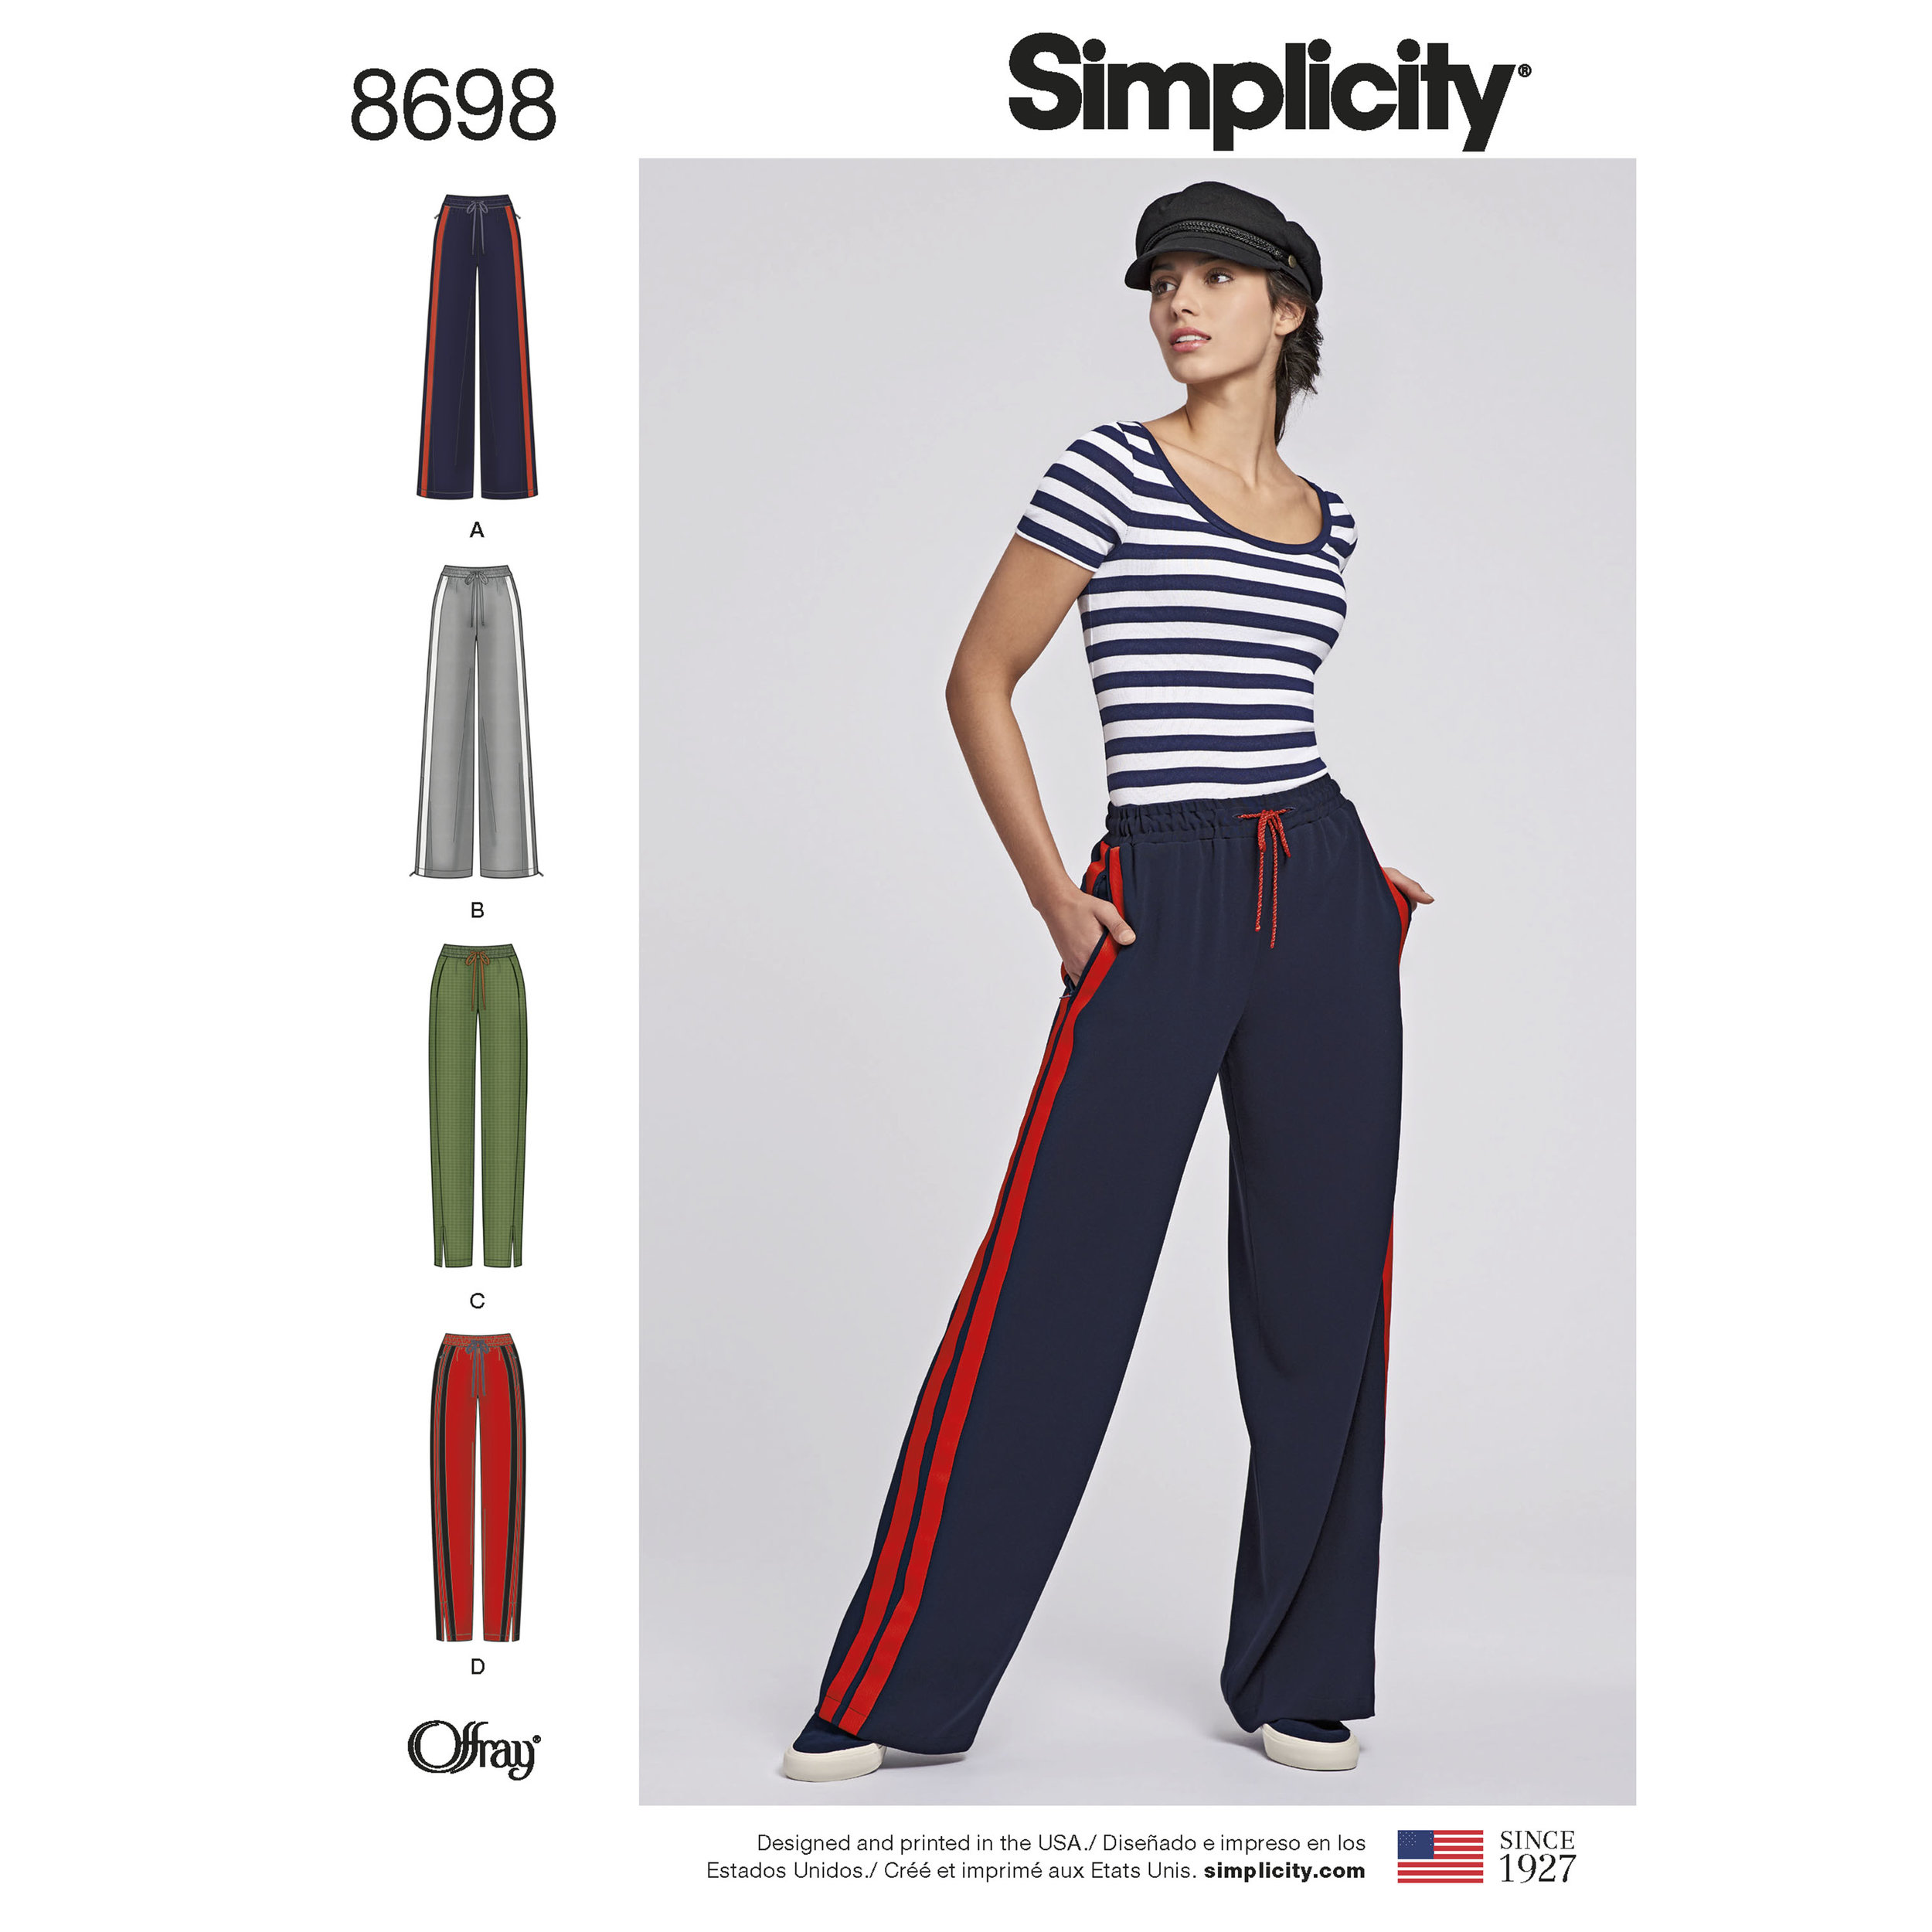 simplicity-track-pant-pattern-8698-envelope-front.jpg